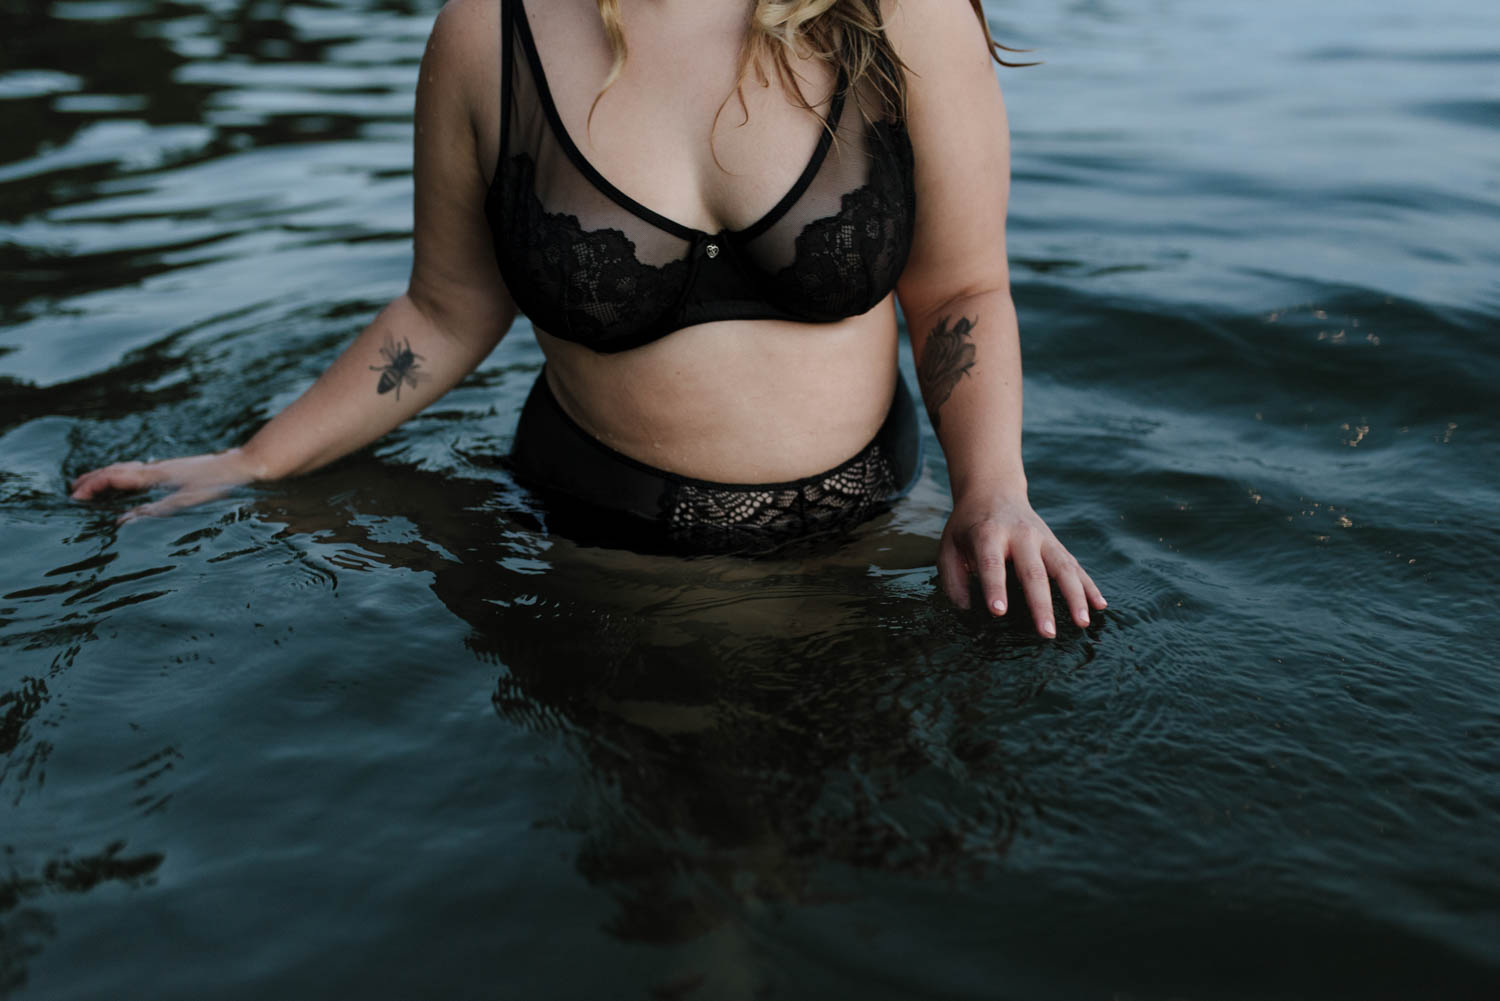 Woman-in-water-Boudoir-Vermont-New-England-Photographer-Haley-Water-Boudoir-Color-_DSC3653©Elisabeth-Waller